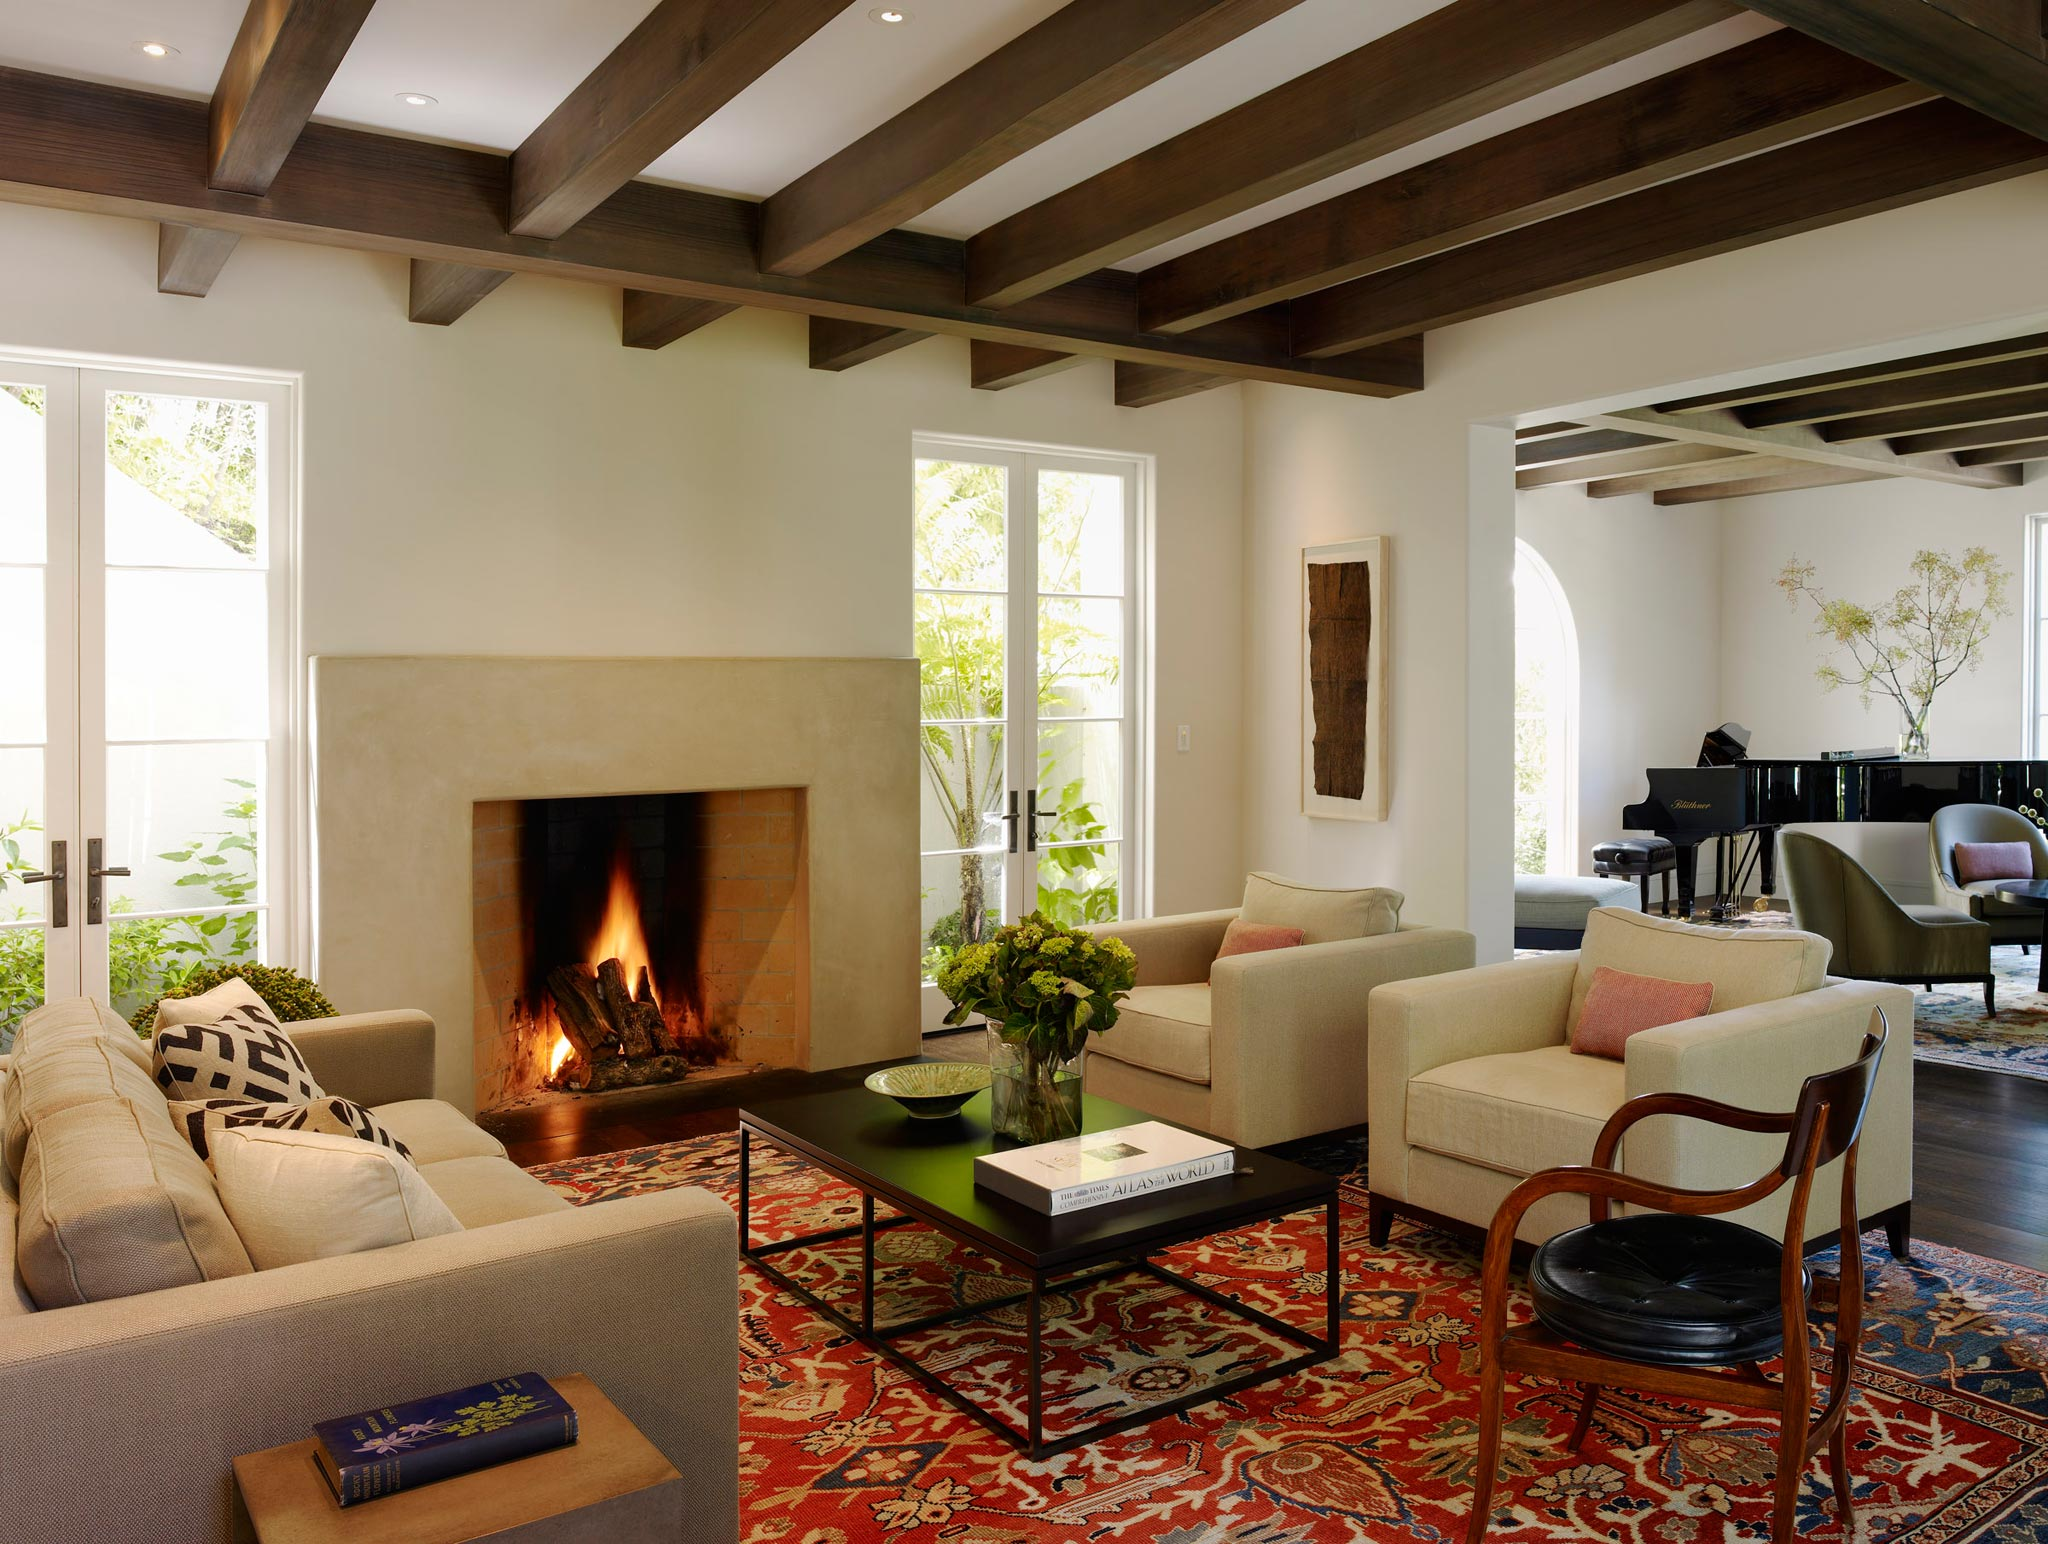 Claremont modern aesthetic pavillon house interior view of living room with fireplace